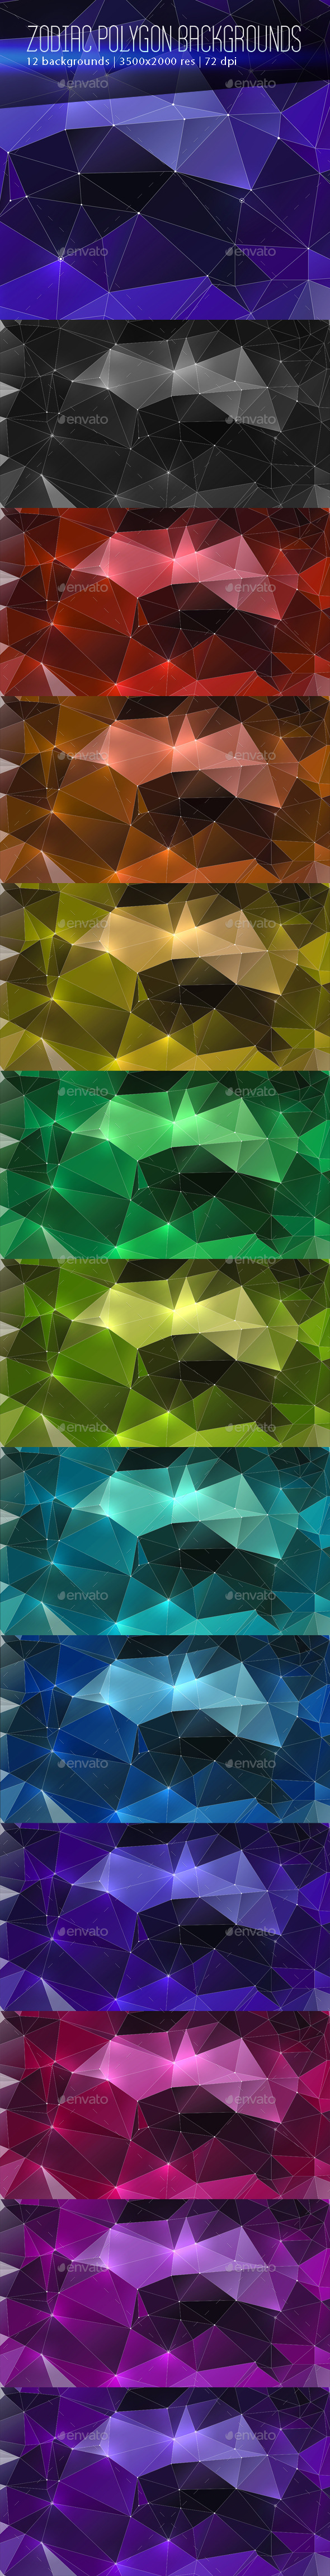 Zodiac Polygon Backgrounds - Abstract Backgrounds